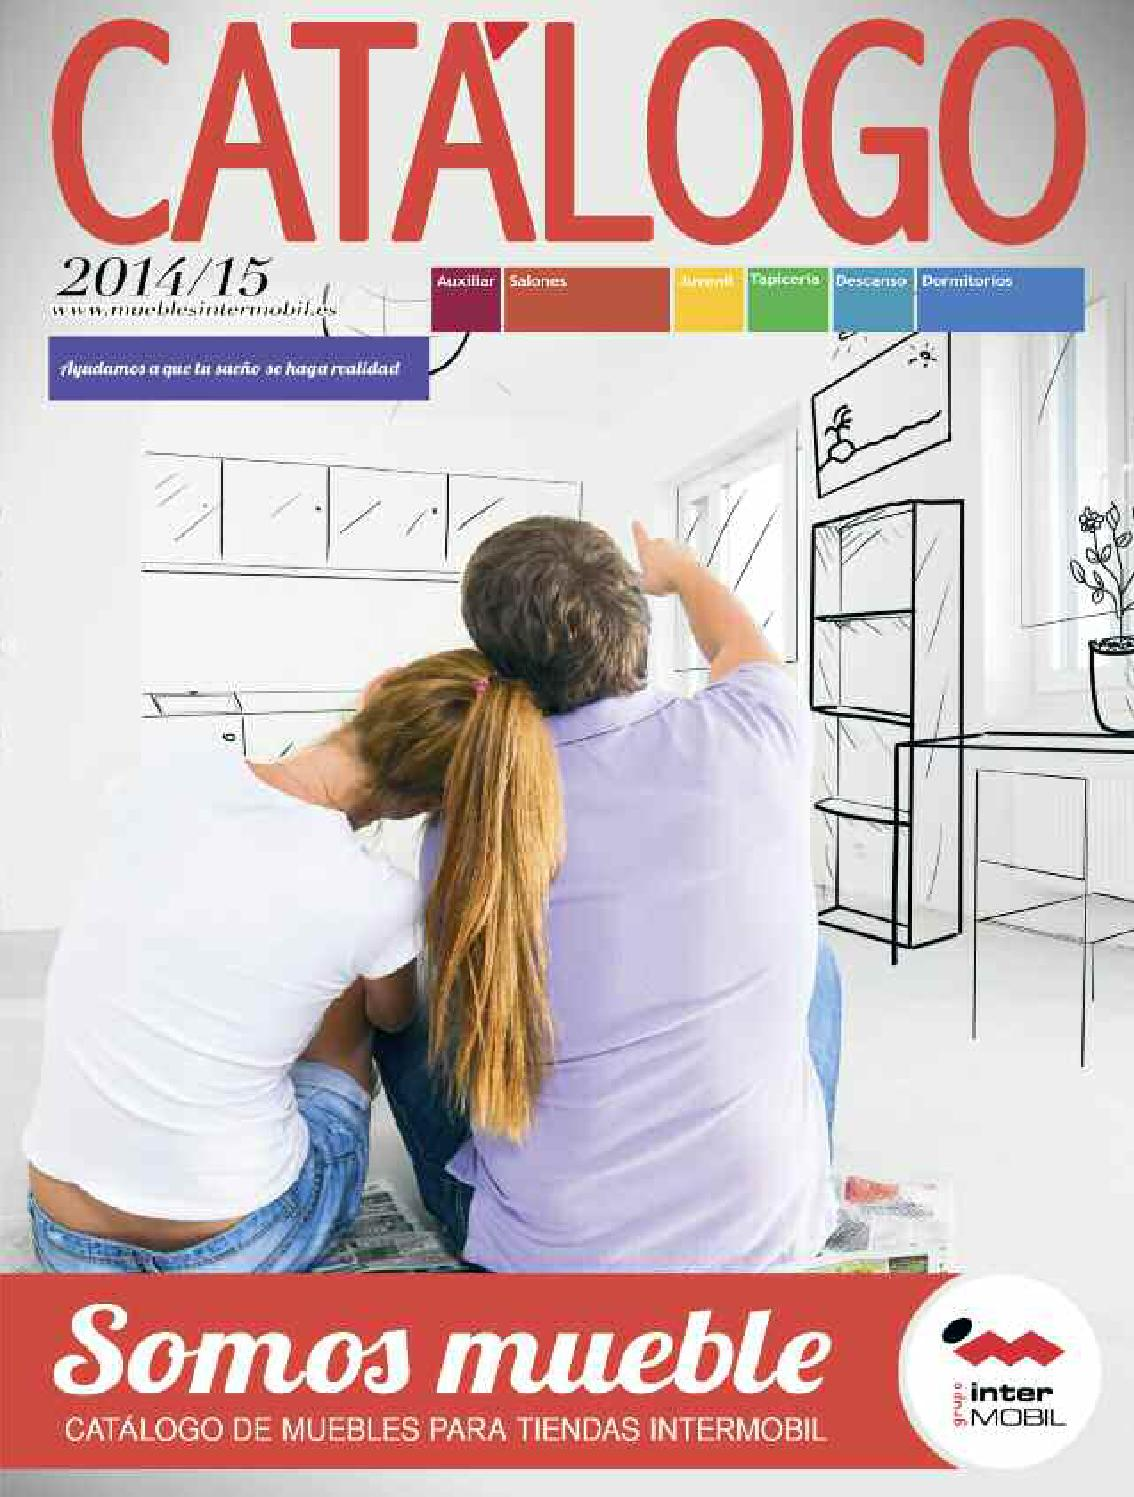 Muebles Salteras Catalogo Catalogo Muebles Intermobil By Misfolletos Misfolletos